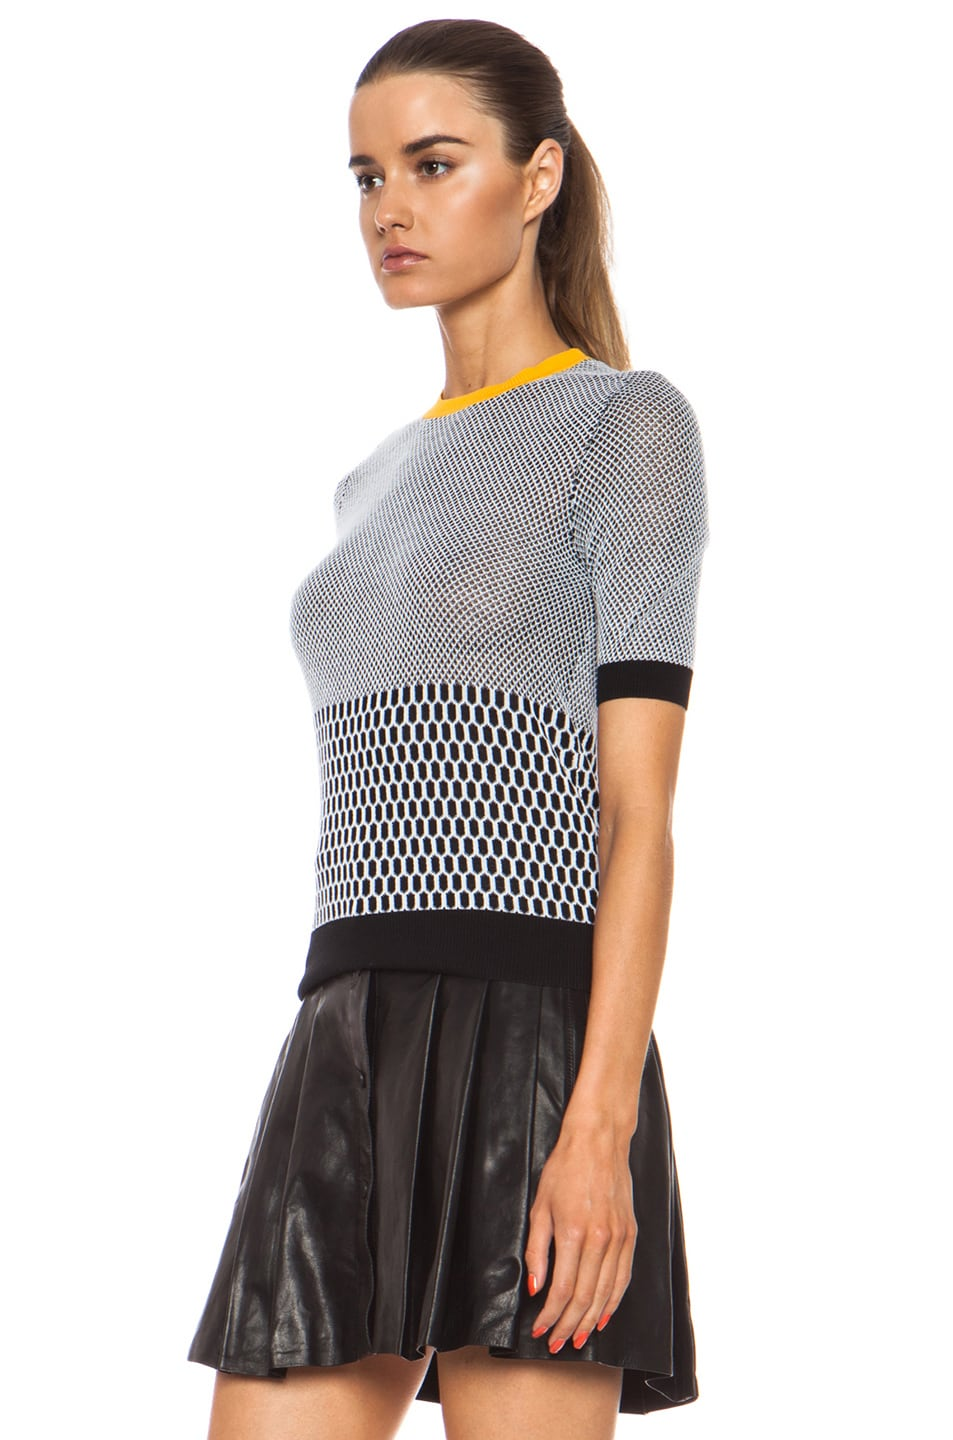 Image 2 of Carven Fancy Cotton Knit Top in Black & White